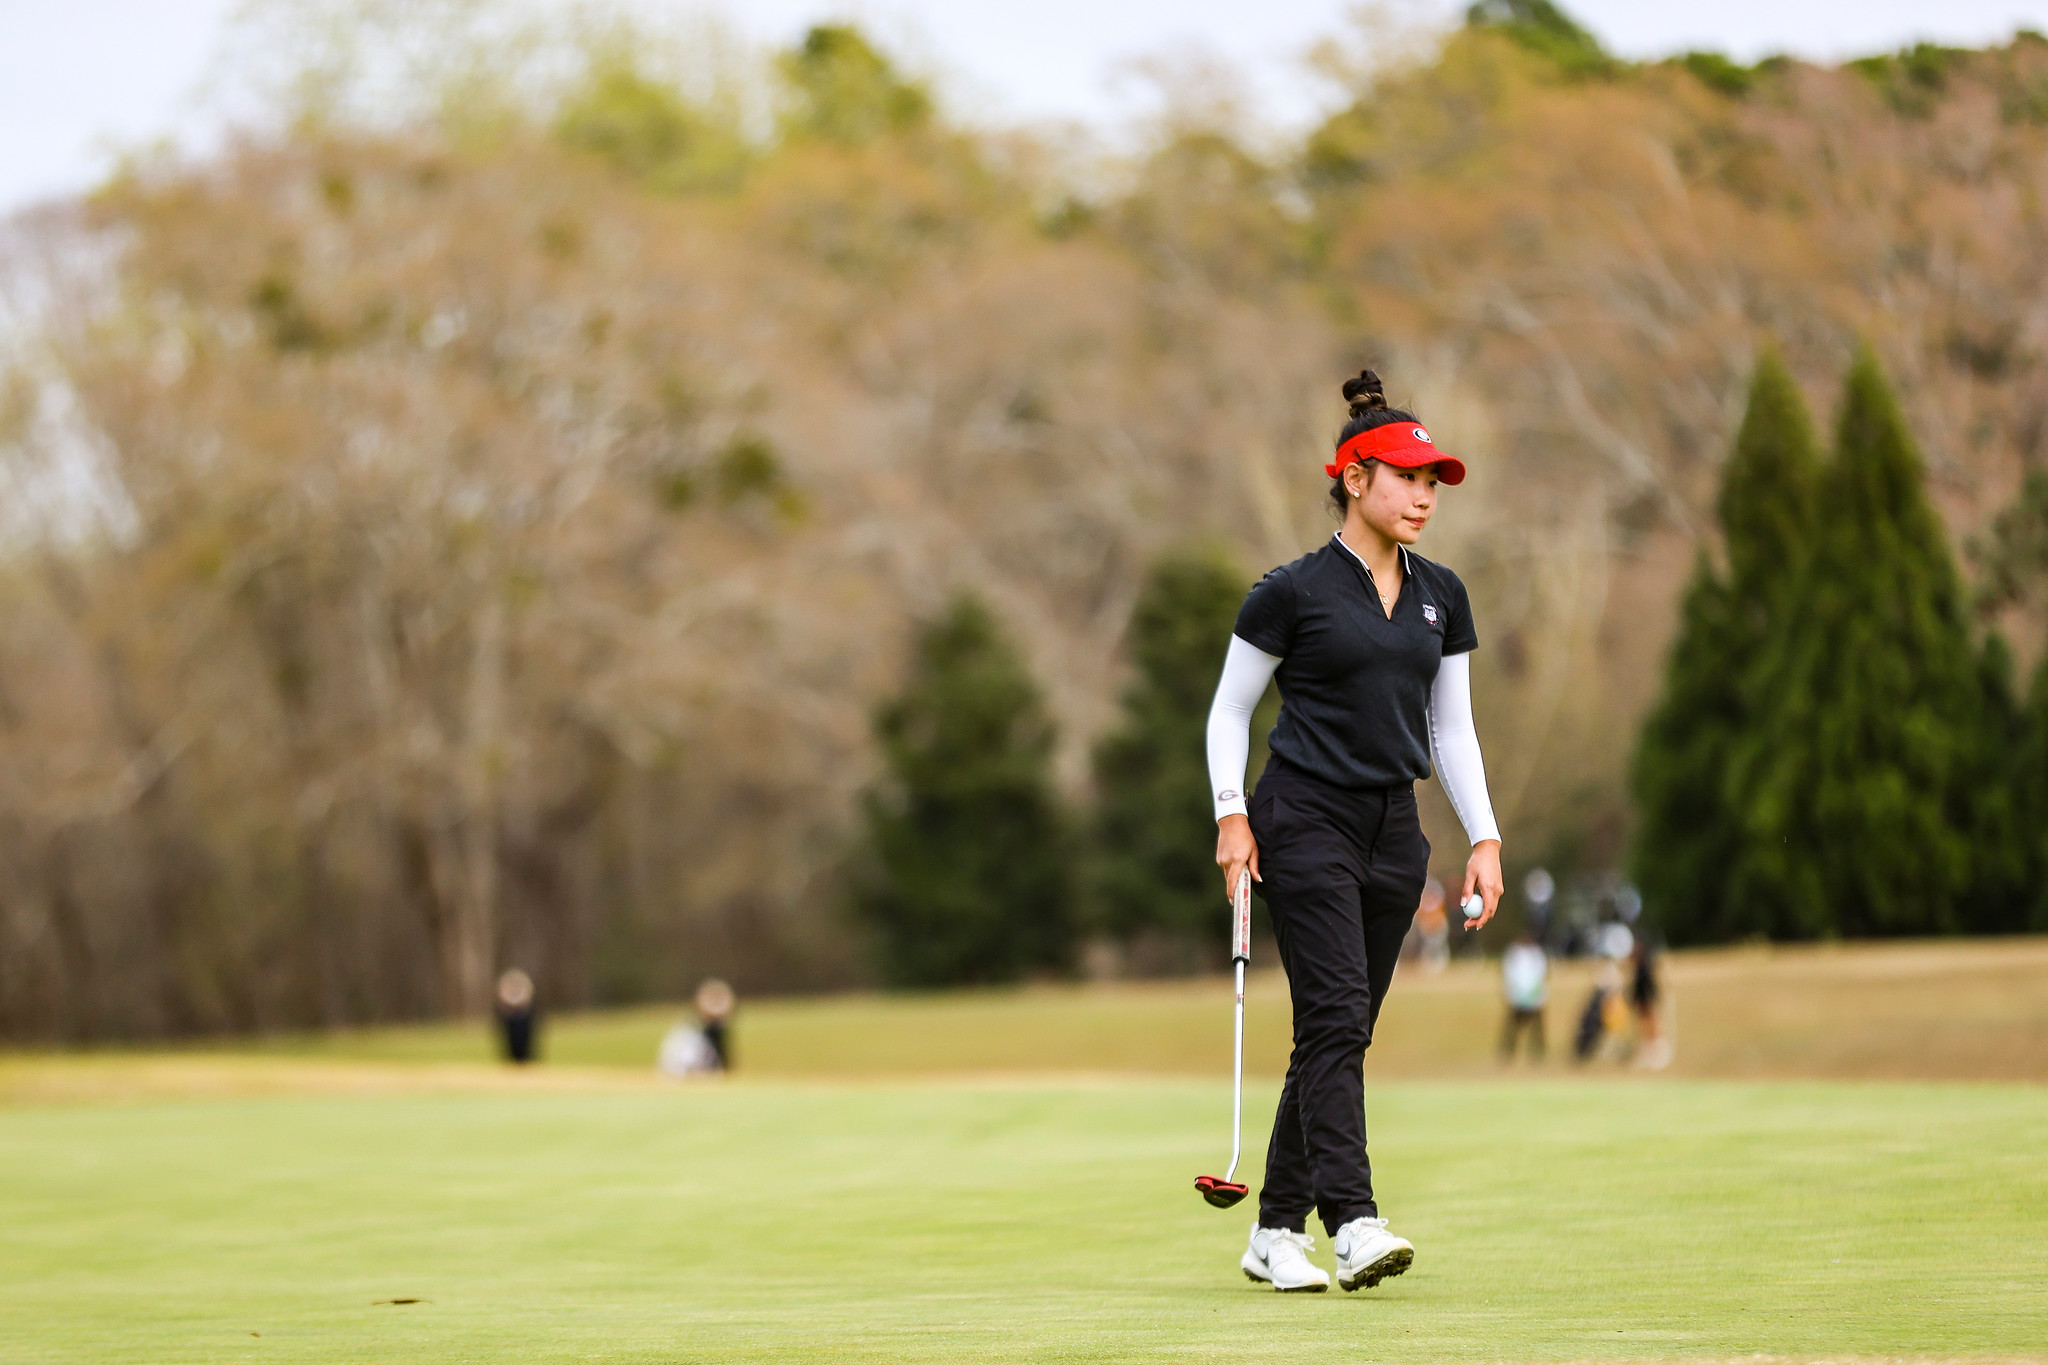 Georgia golfer Jo Hua Hung during the Liz Murphey Collegiate Classic at the UGA Golf Course in Athens, Ga., on Sunday, March 21, 2021. (Photo by Tony Walsh